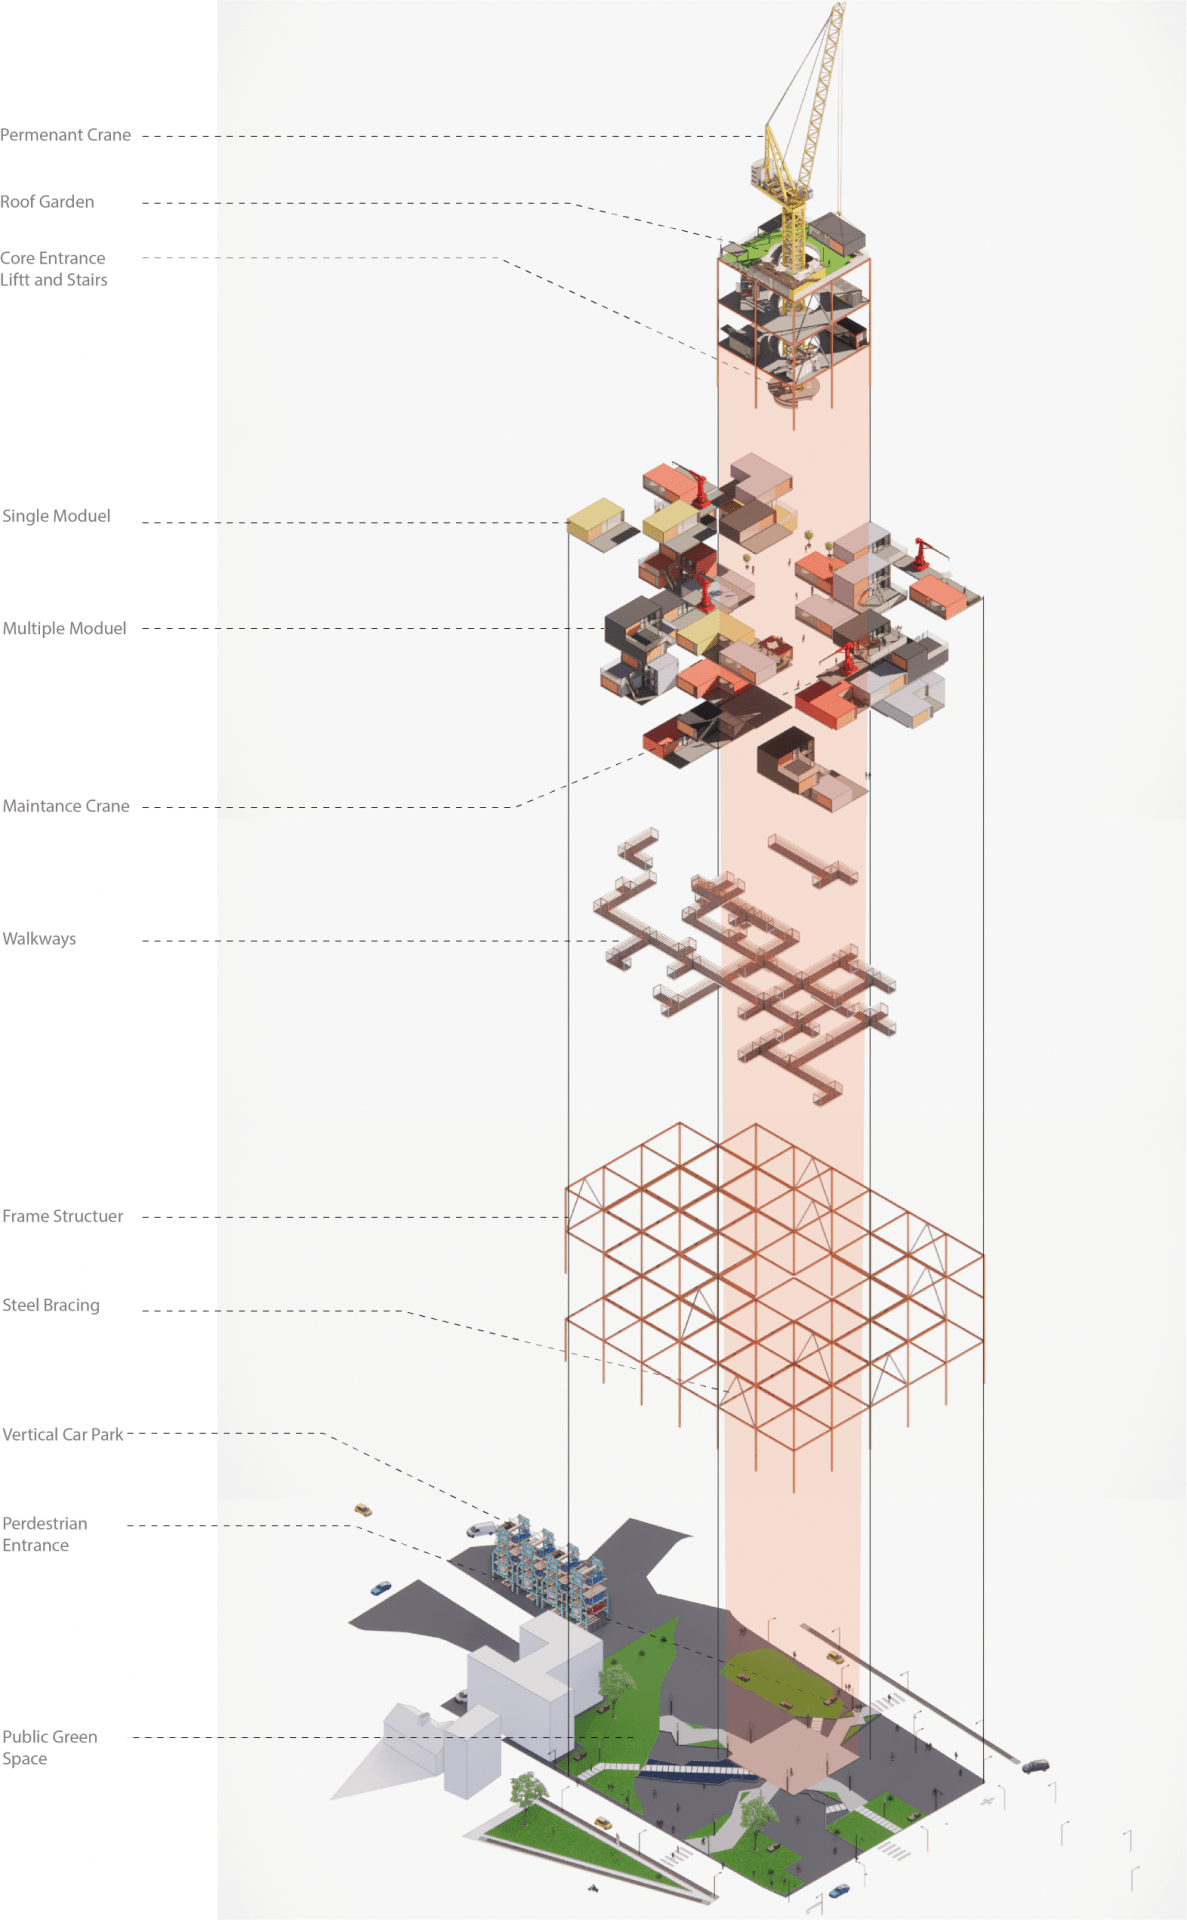 Exploded diagram showing the modular structure of the development